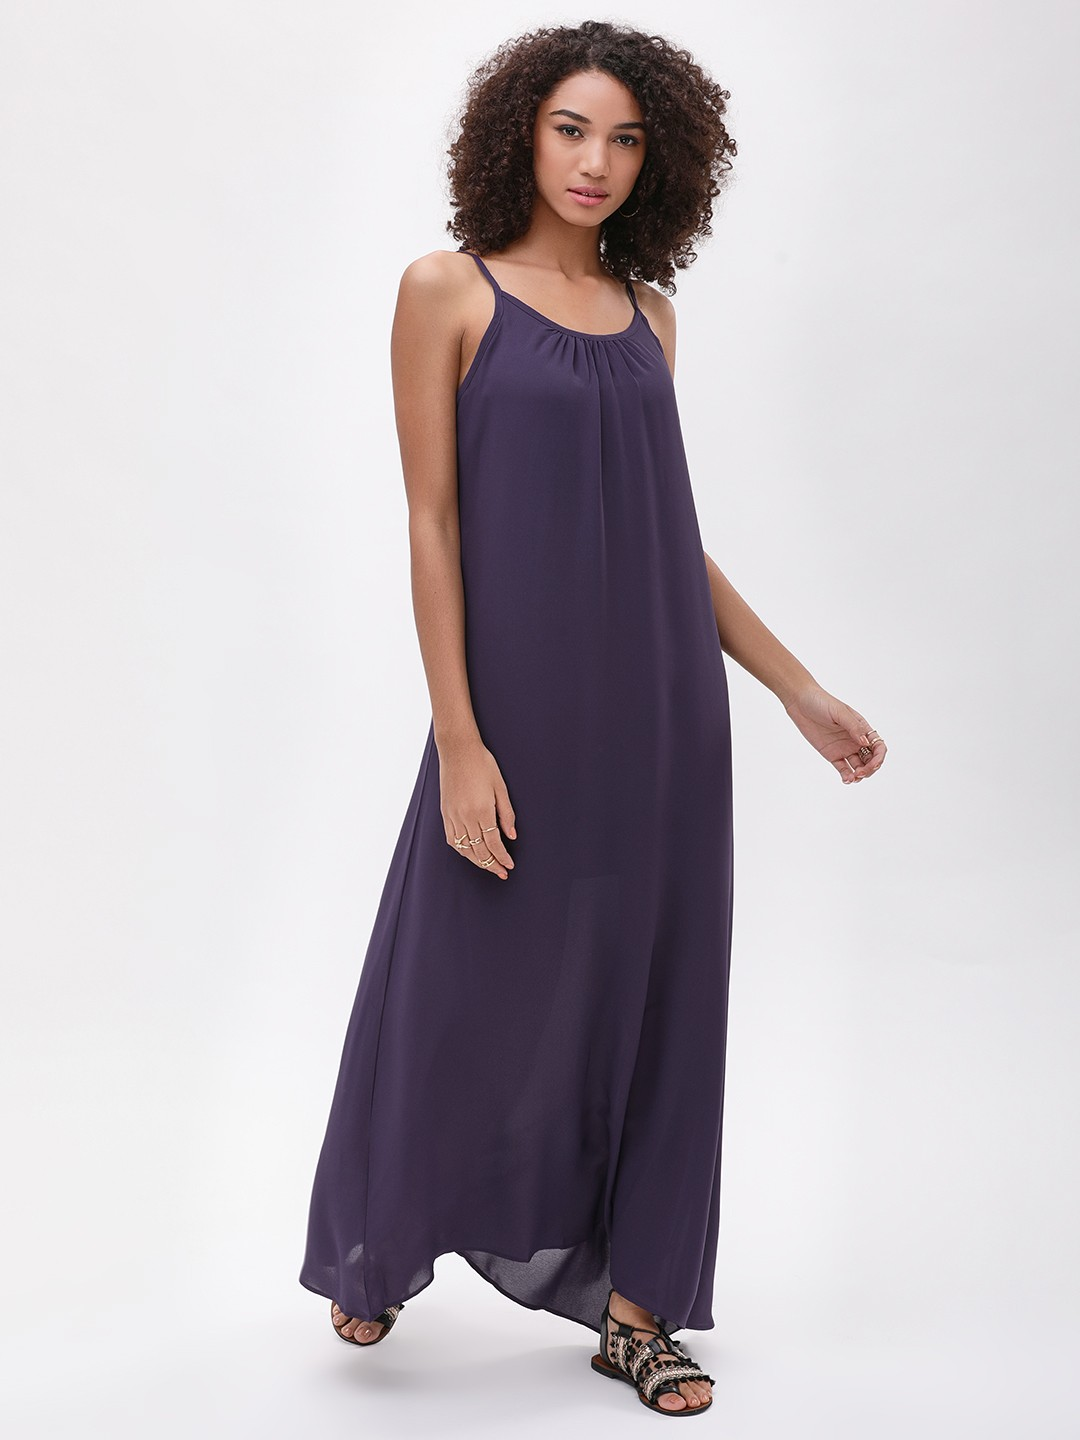 Catwalk88 Plum/Black lining Cami Straps Maxi Dress 1